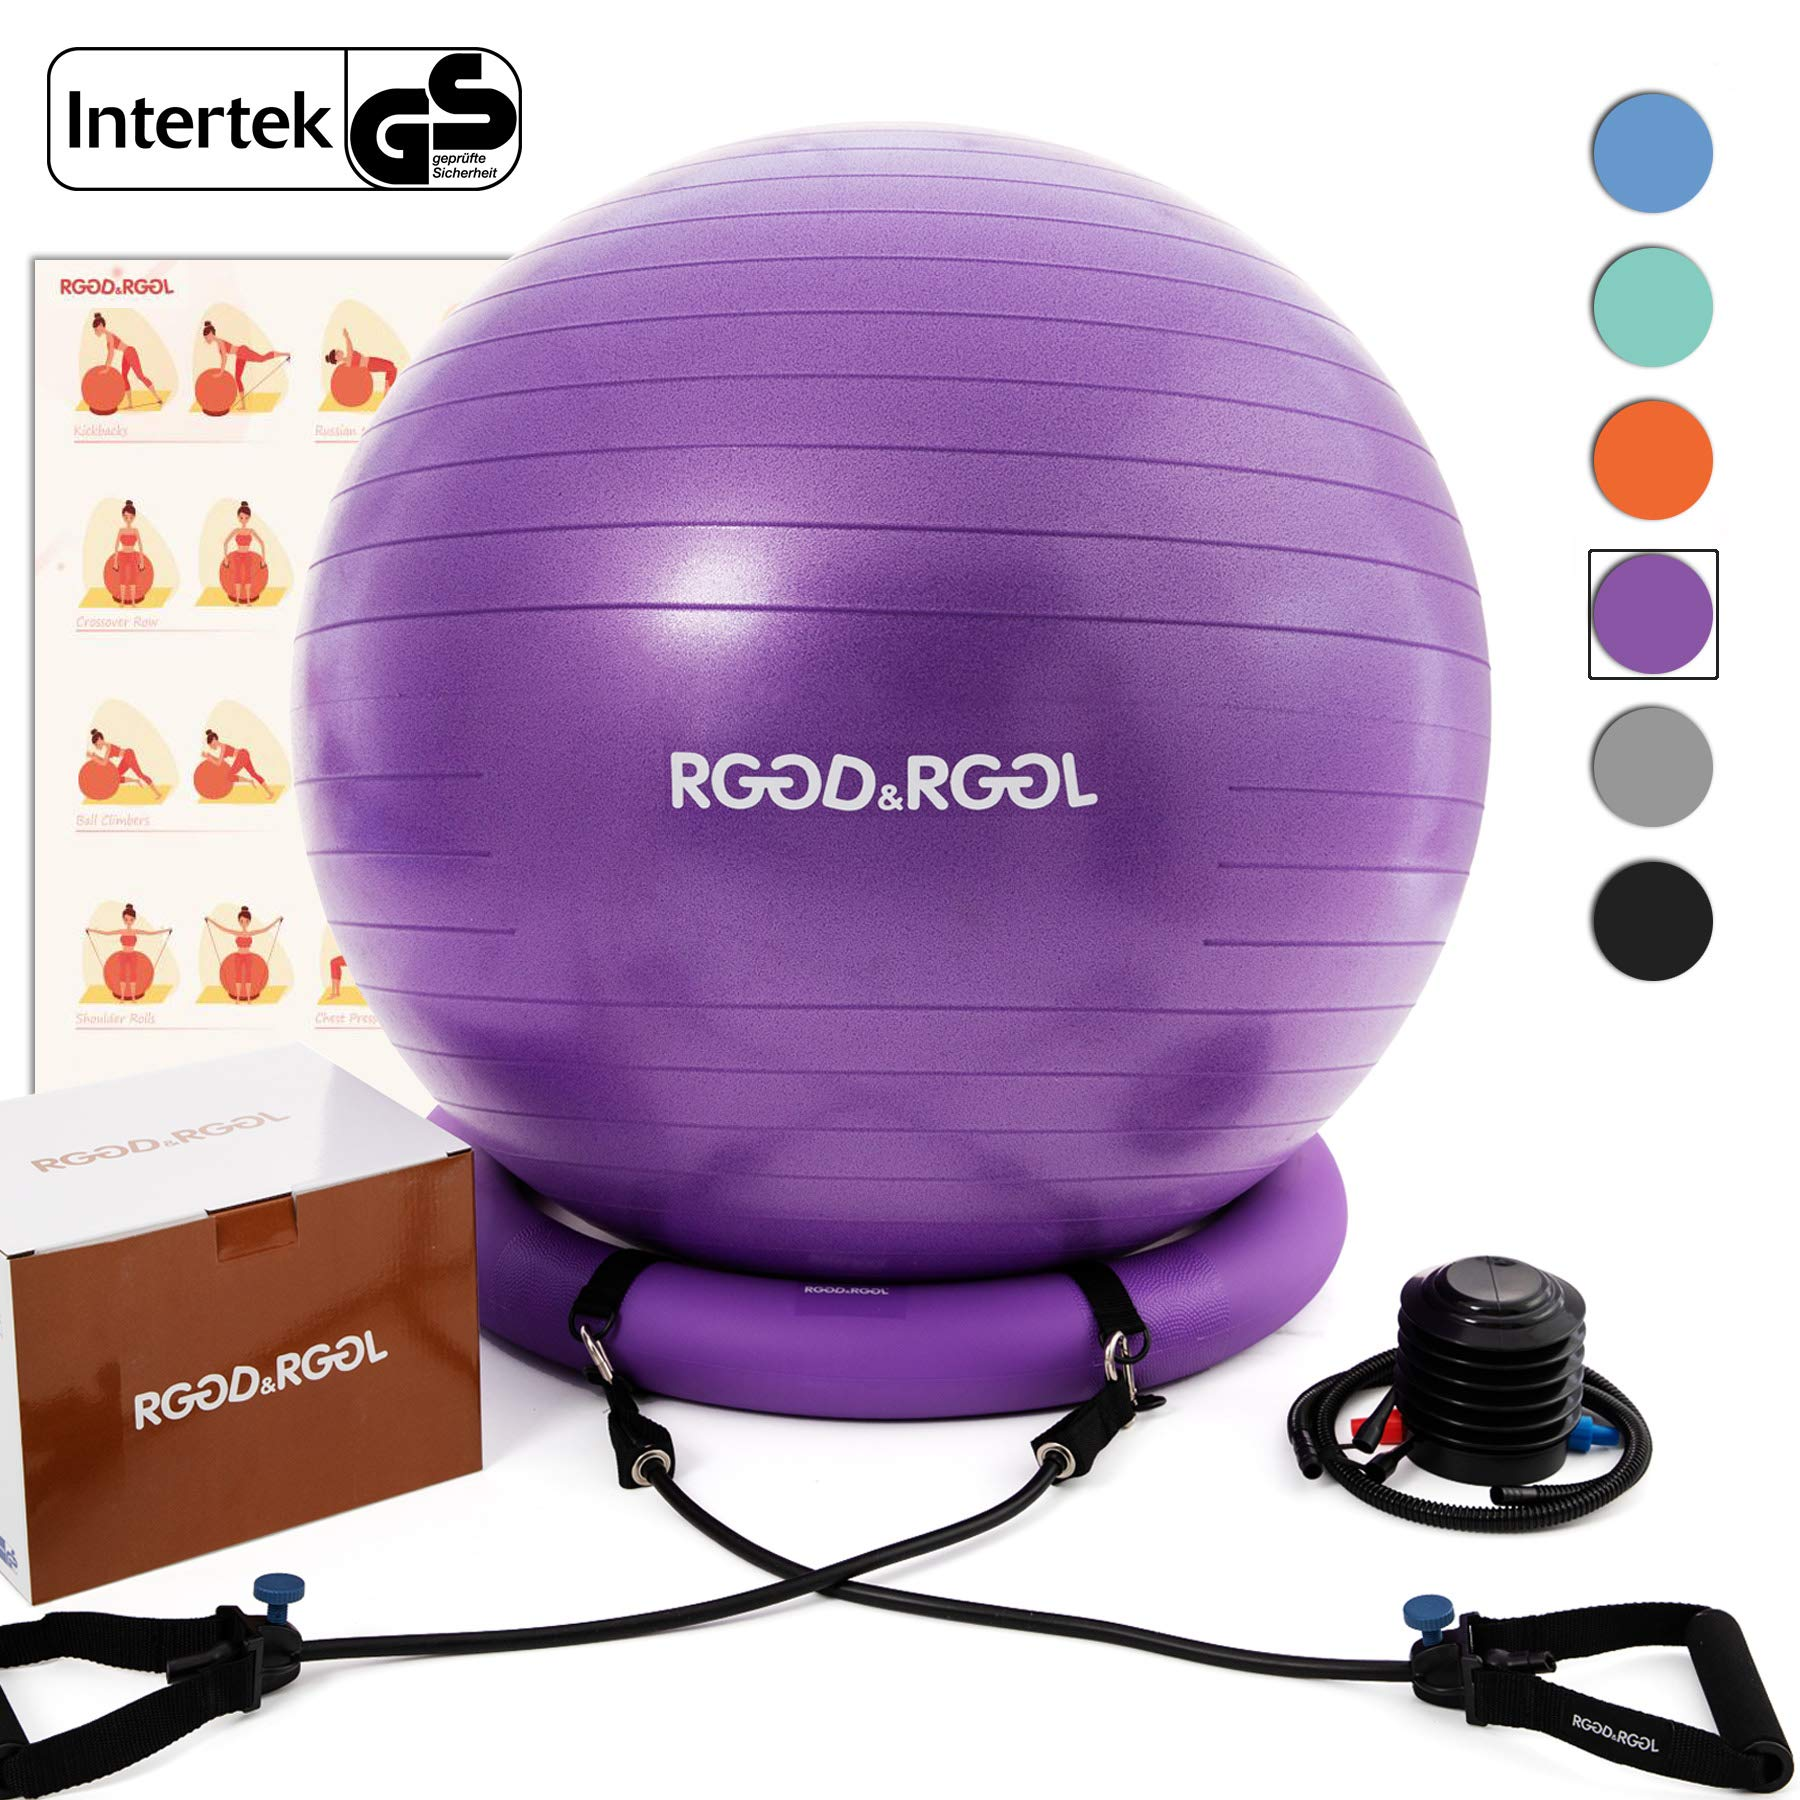 RGGD&RGGL Yoga Ball Chair, Exercise Balance Ball Chair 65cm with Inflatable Stability Ring, 2 Resistant Bands and Pump for Core Strength and Endurance by RGGD&RGGL